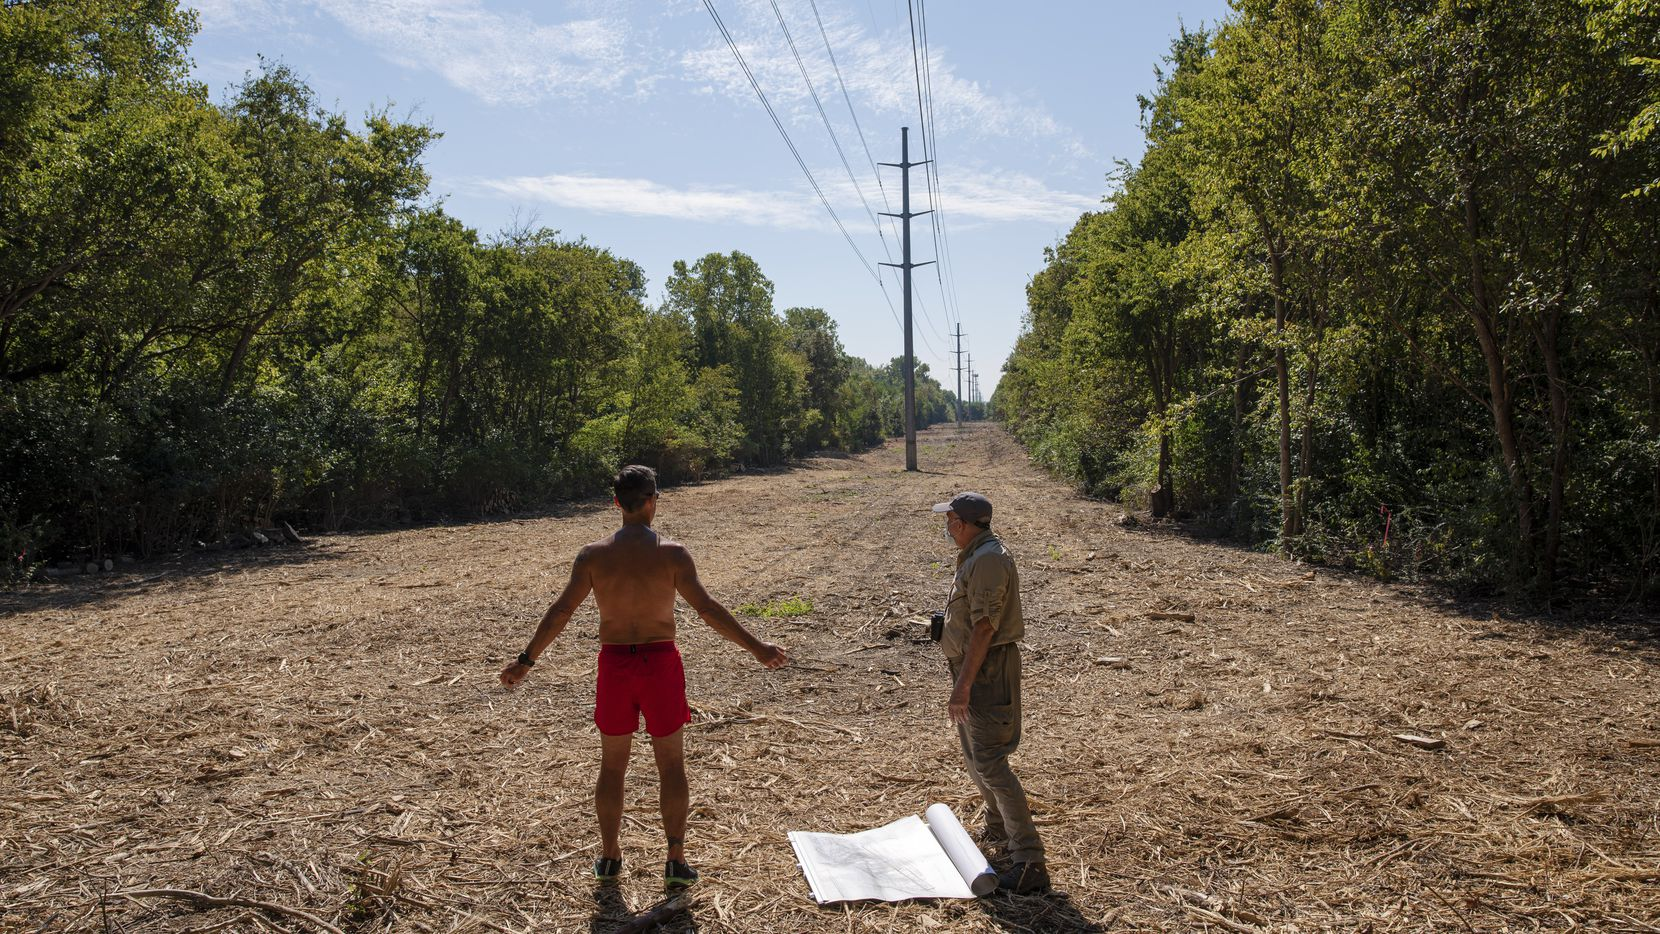 White Rock resident and runner Eric Griffin, left, and environmental activist Kelly Cotten, right, speak about the area of the Old Fish Hatchery Nature Area after an Oncor contractor cleared out land, Thursday in Dallas. Griffin, who knew about the clear out of land, was on a daily run and started speaking to Cotten about the incident.